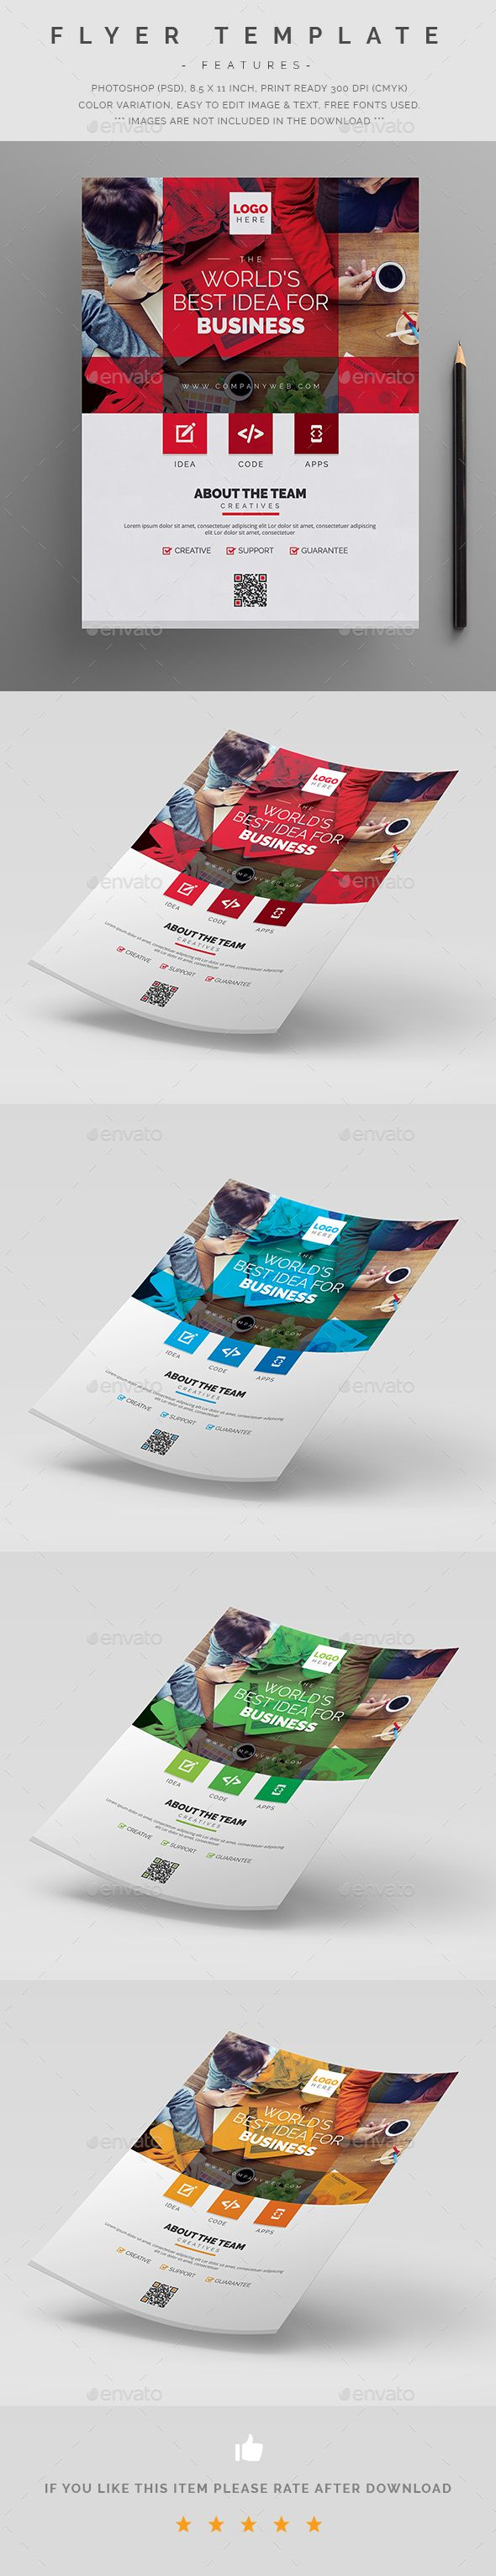 Poster design rates - Flyer Template Psd